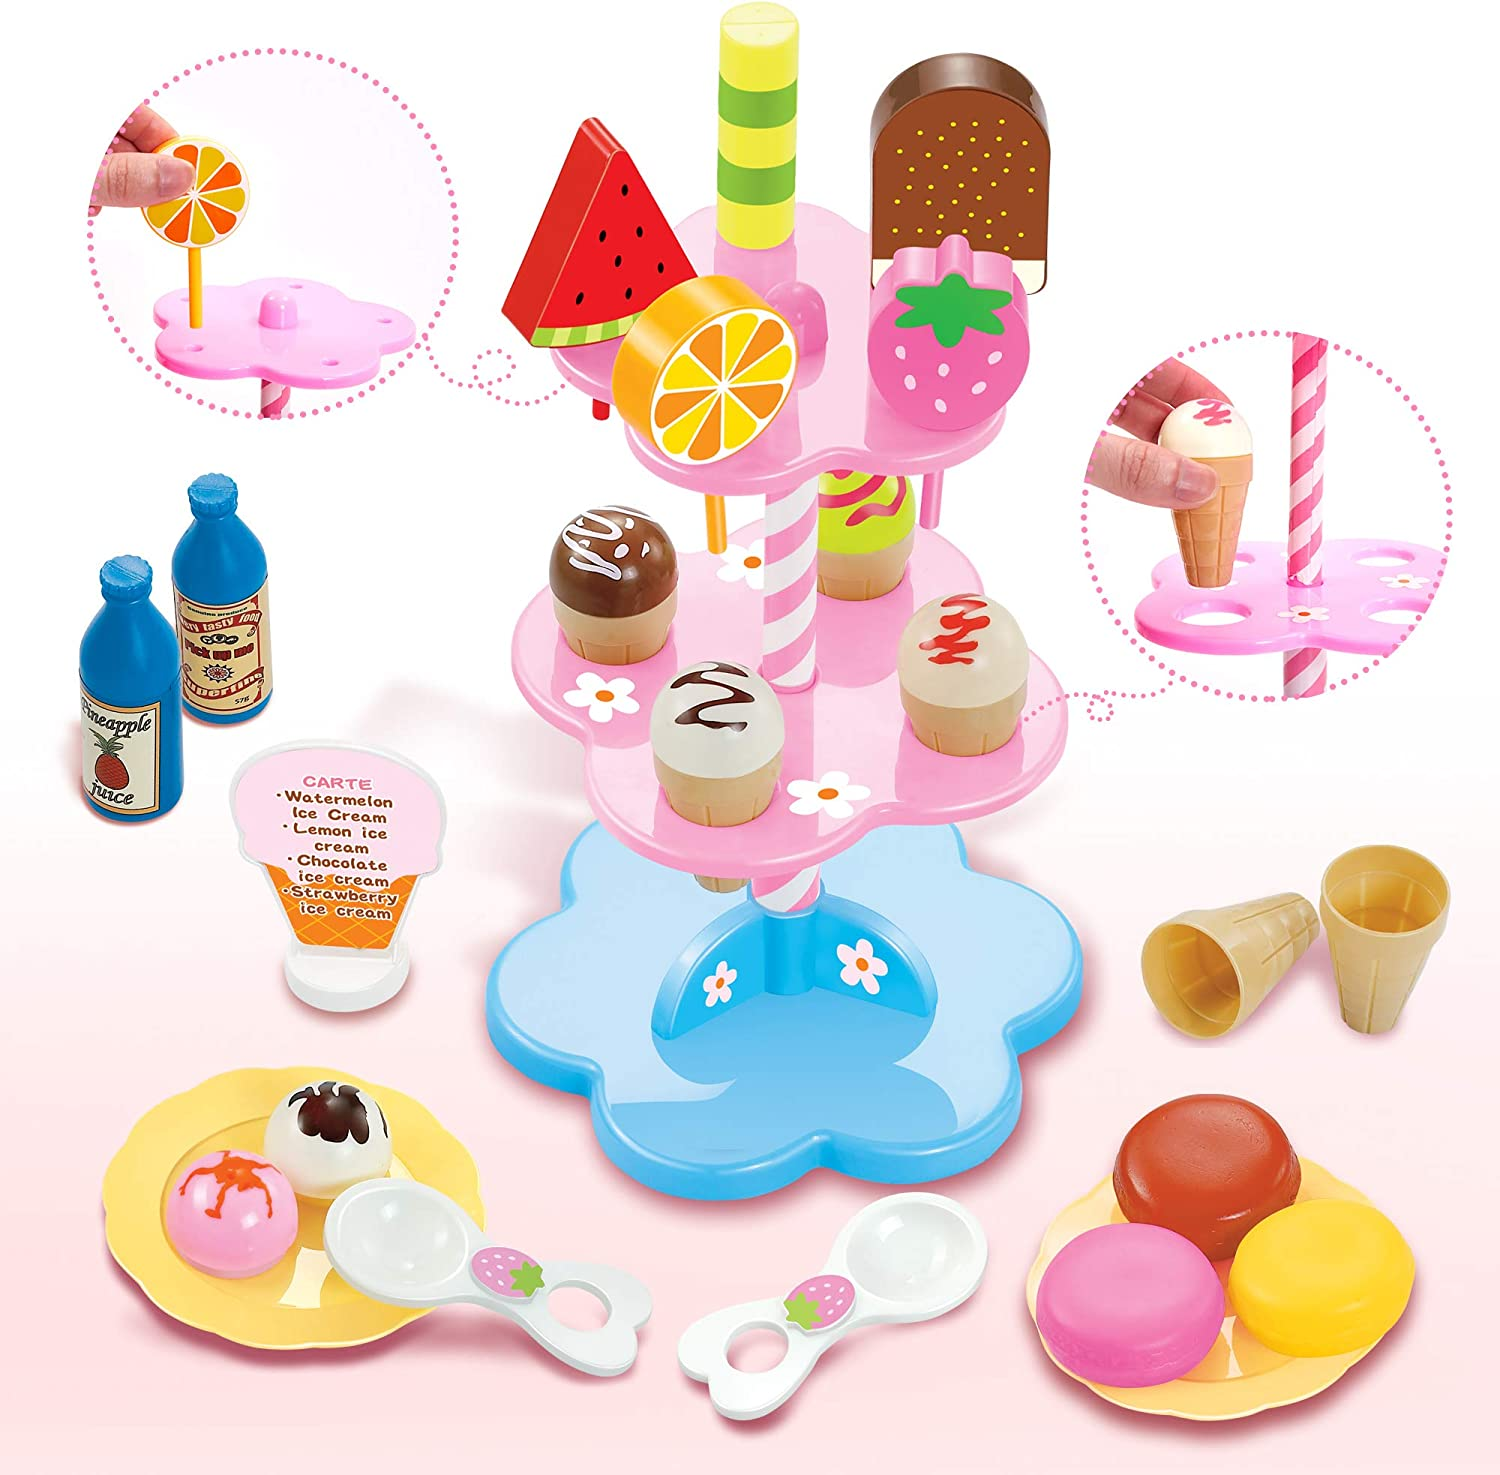 DIY Role Play Toy Ice Cream Desserts Lolly Stand Pretend Play Set Food Xmas